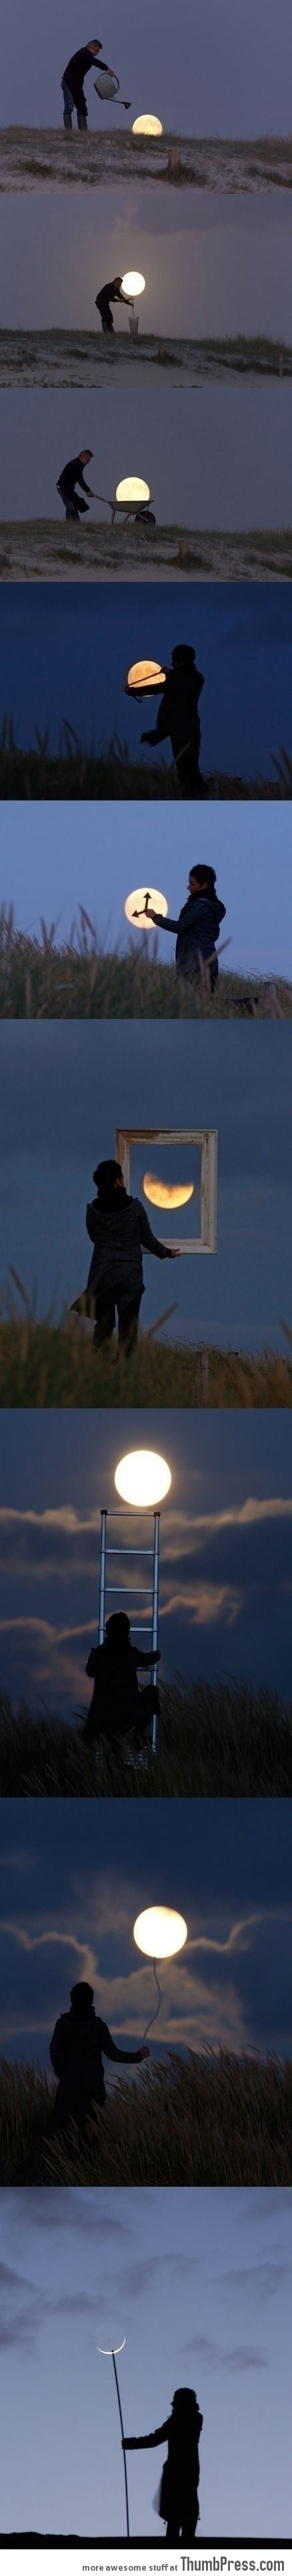 Awesome pics with the sun and the moon